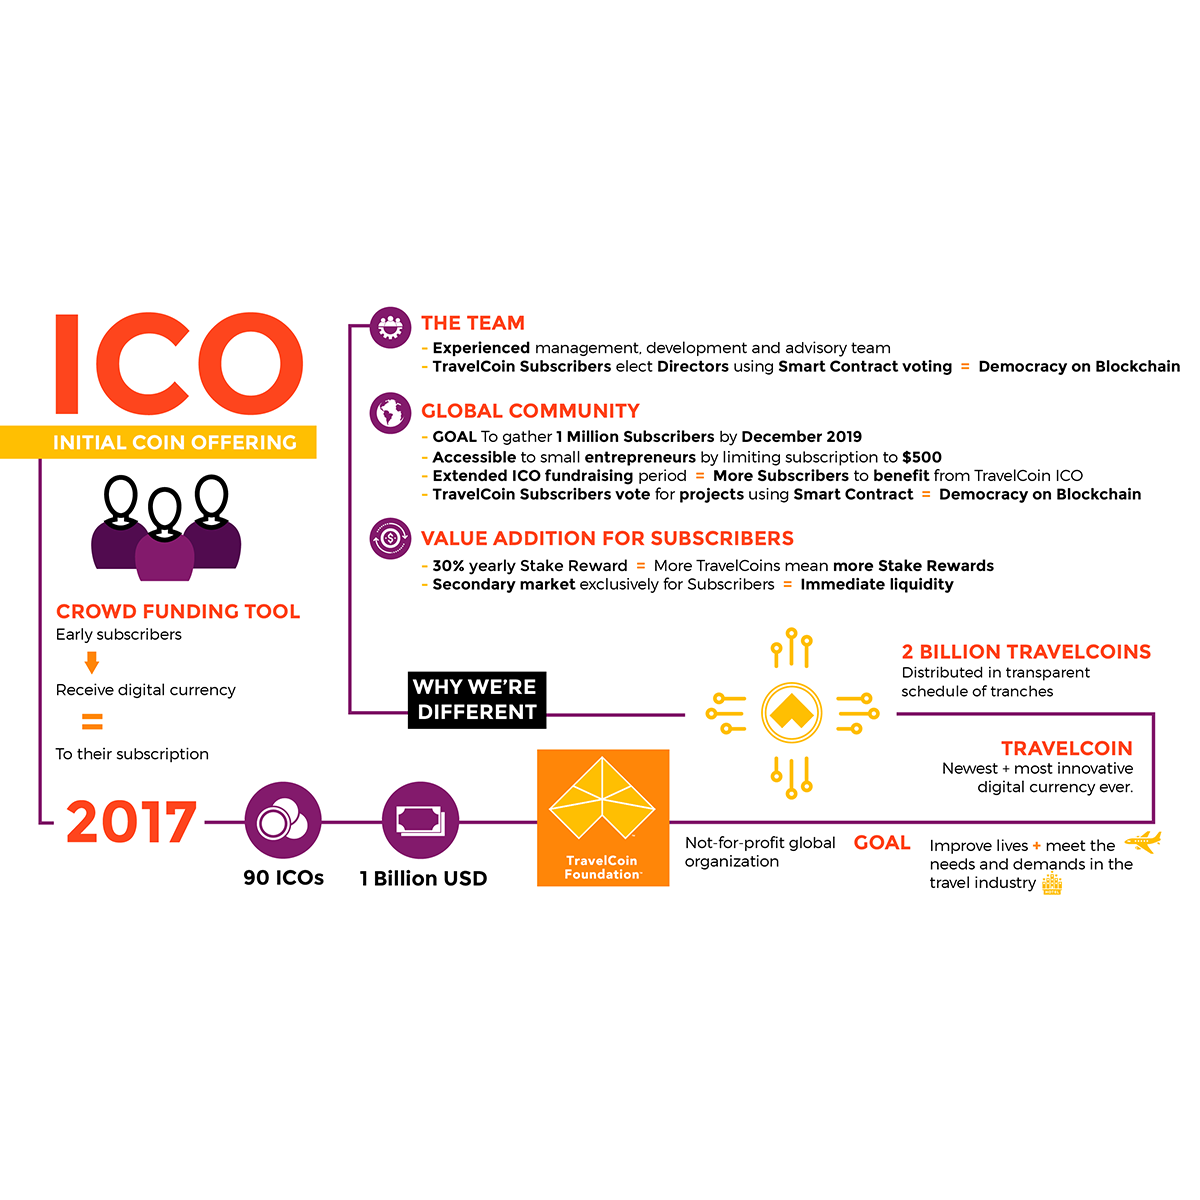 ICO-INFOGRAPHIC-highres-01.png